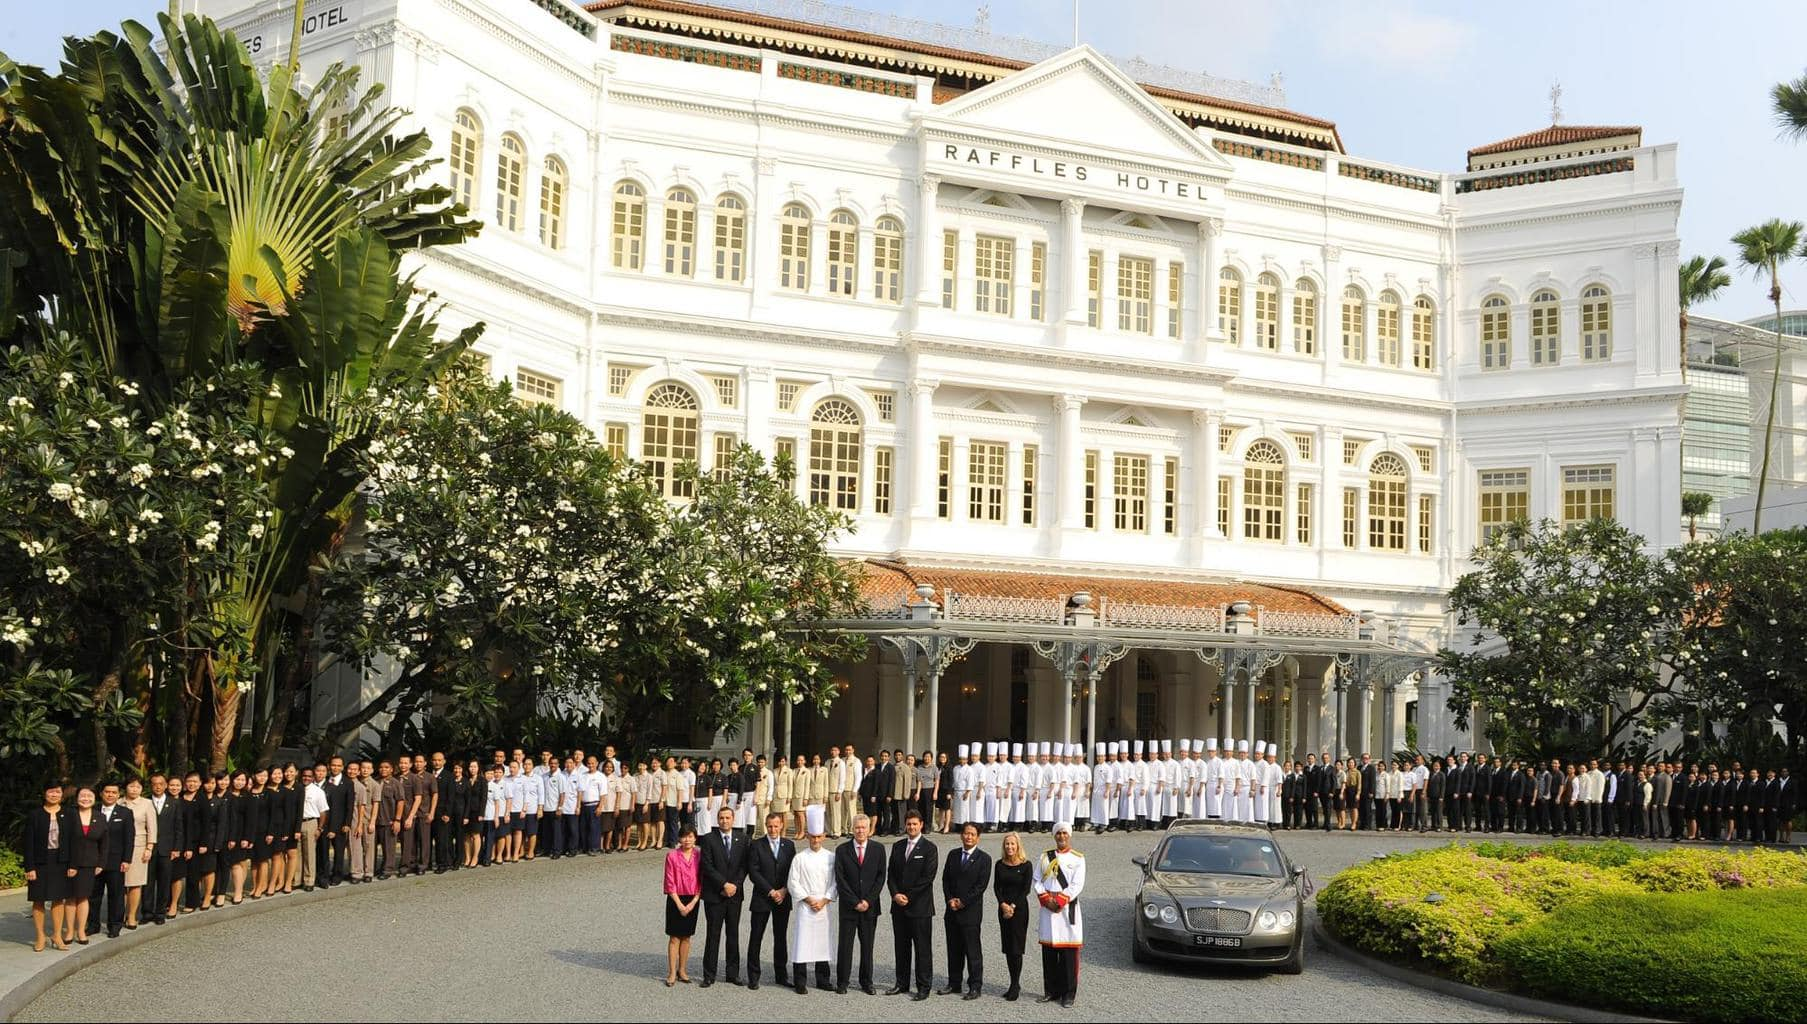 The story of Raffles Singapore, the oldest hotel in Asia